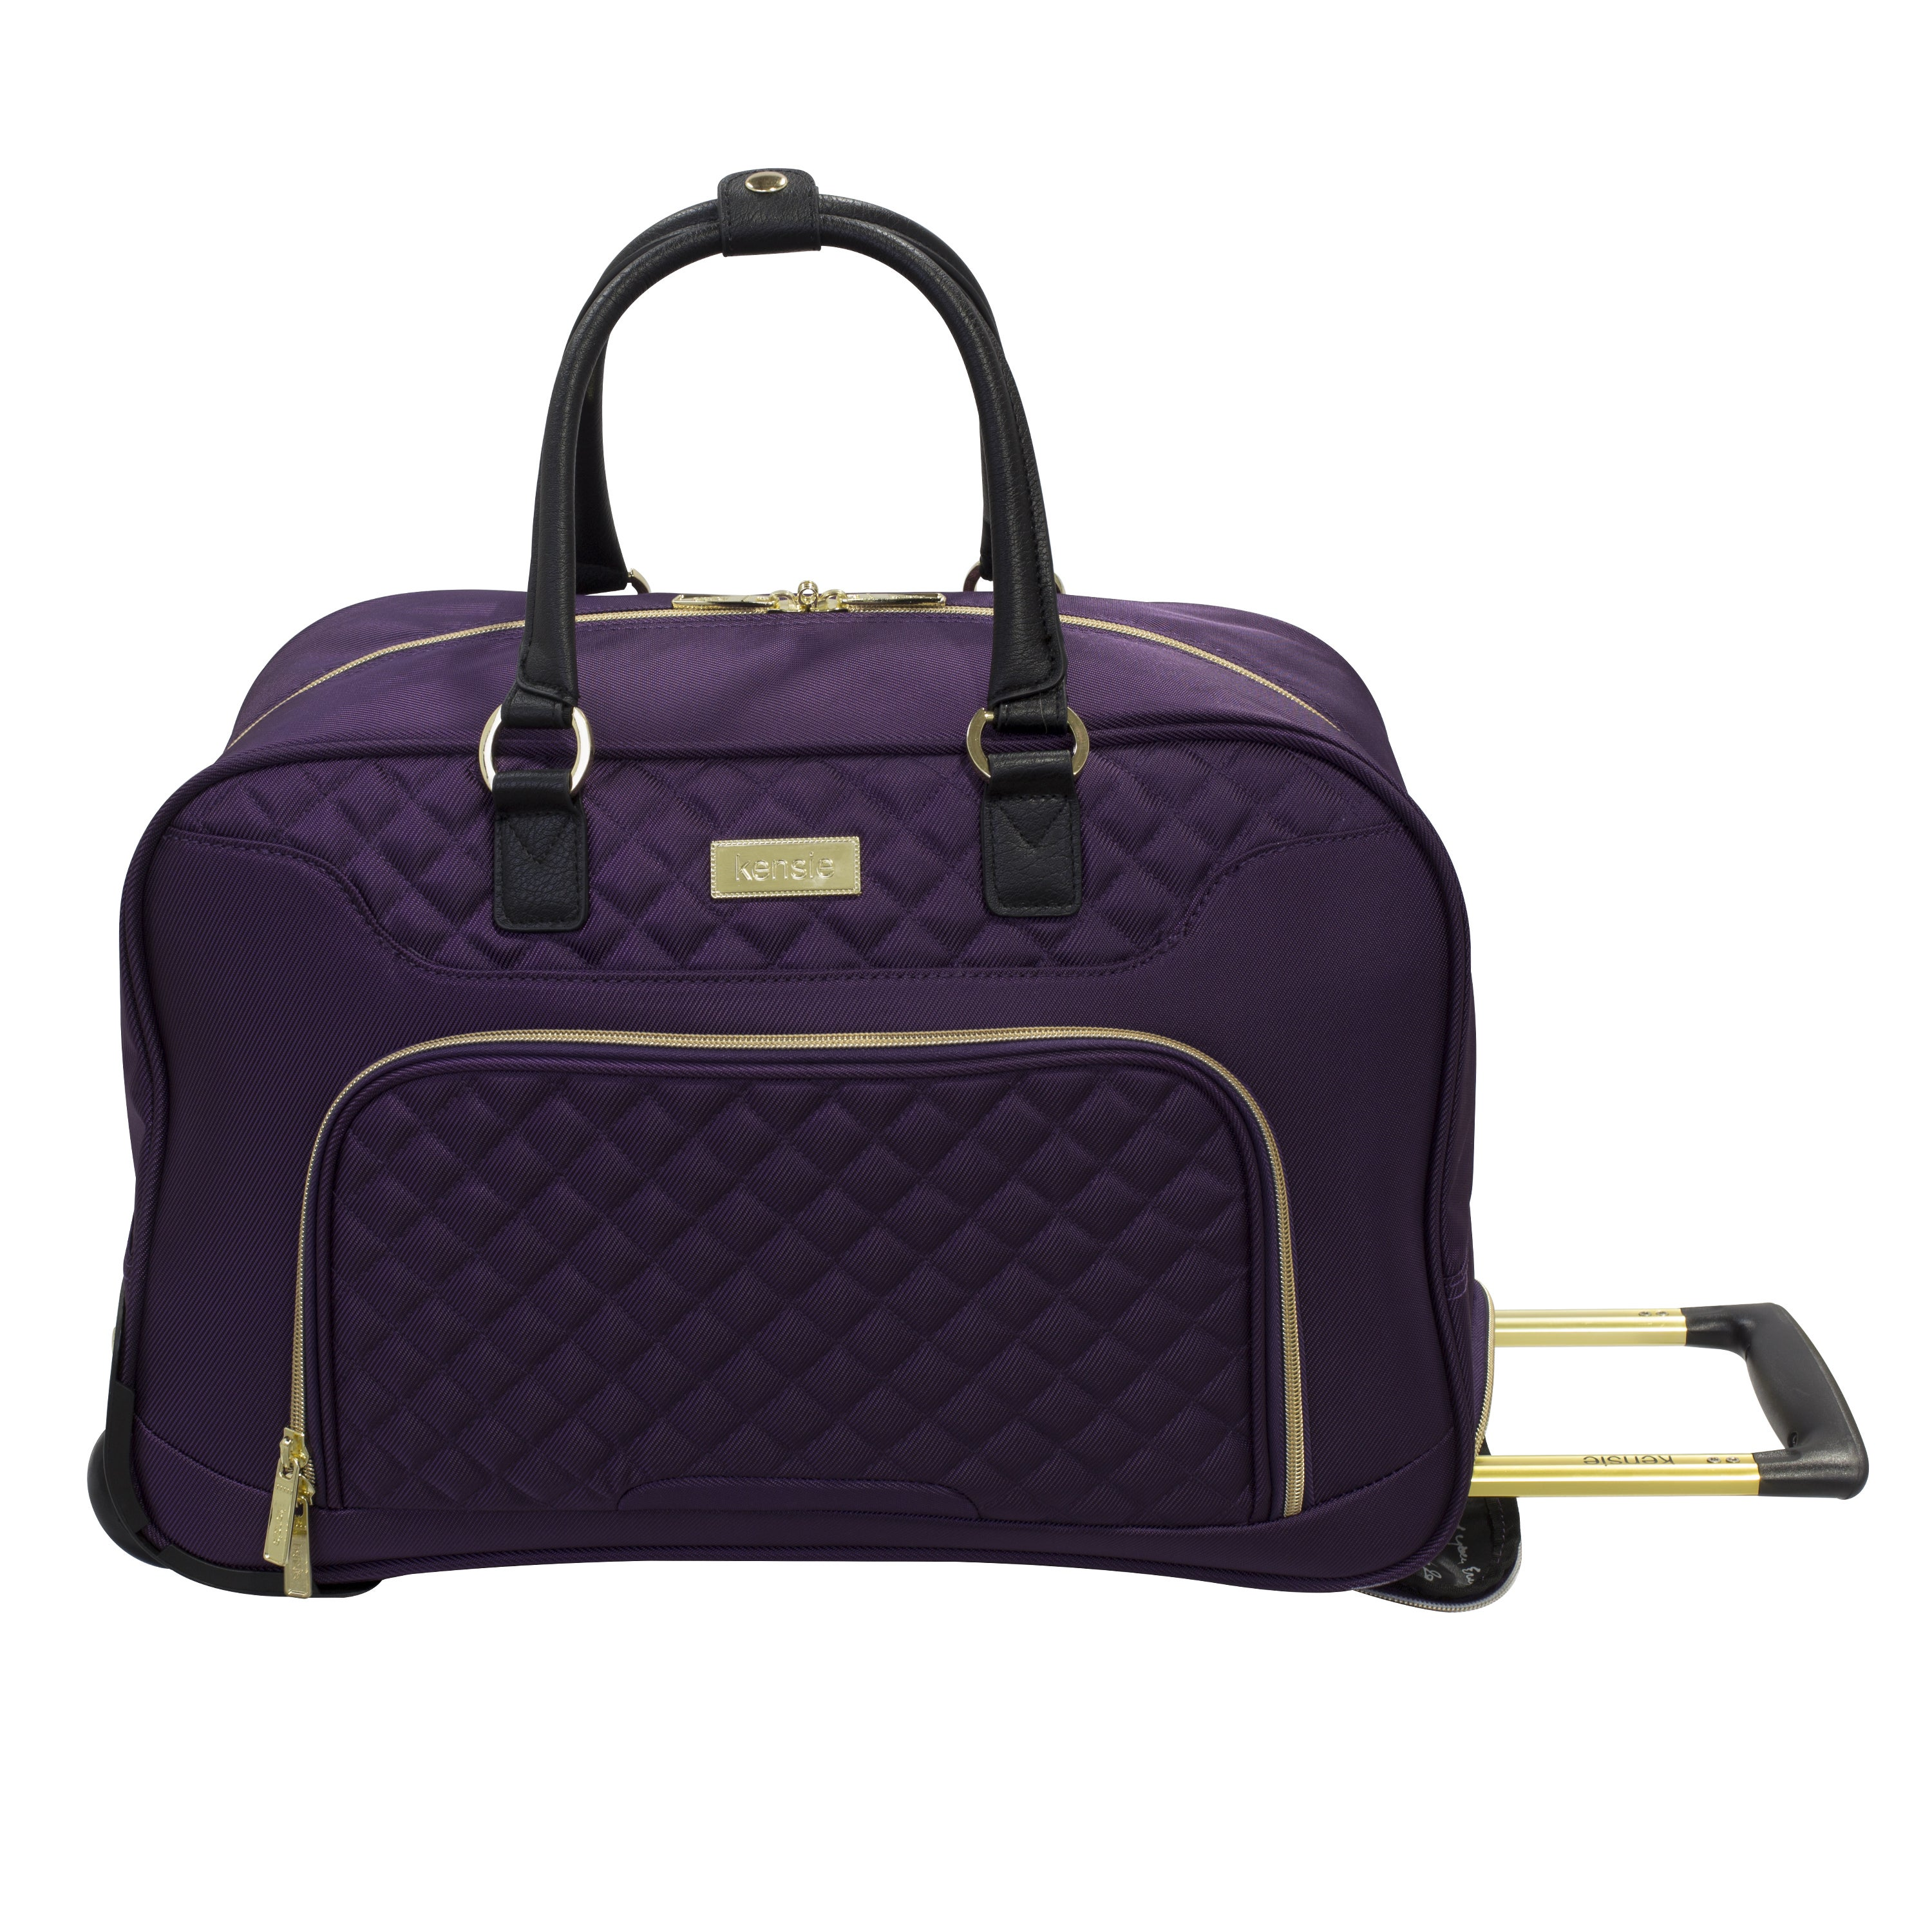 b4ee061f2823 Shop Kensie Fashion 19-inch Rolling Carry-on Duffel Bag - Free Shipping  Today - Overstock - 14418257